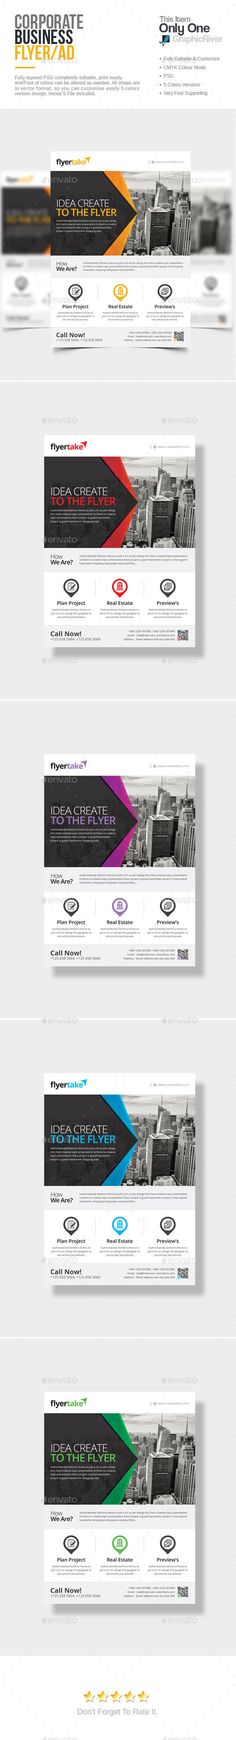 Corporate Flyer Template PSD. Download here: http://graphicriver.net/item/corporate-flyer/15190471?ref=ksioks